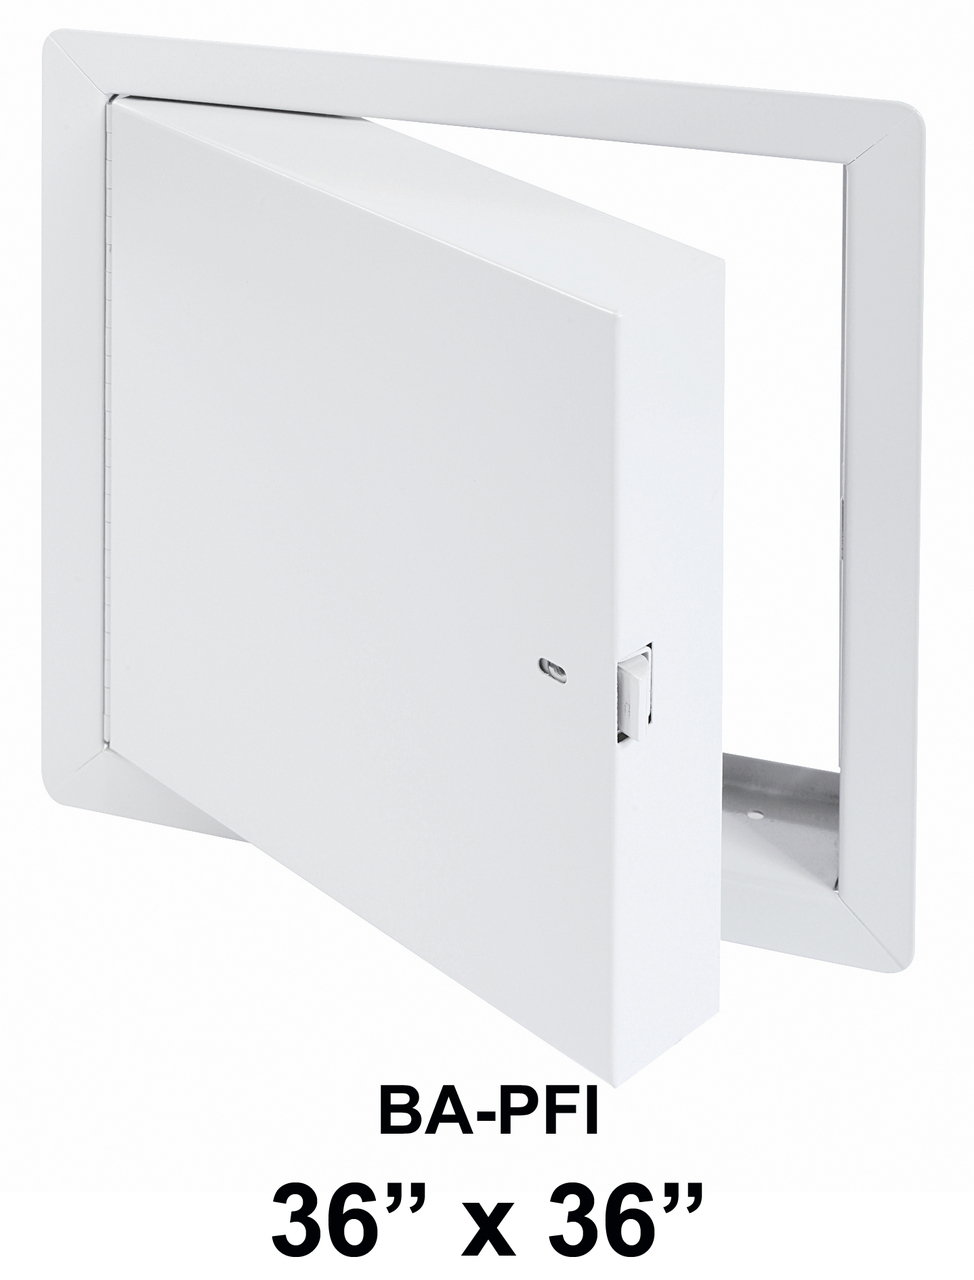 Rated Access Doors BA-PFI Fire Rated Insulated with Flange 36″ x 36″ – BEST